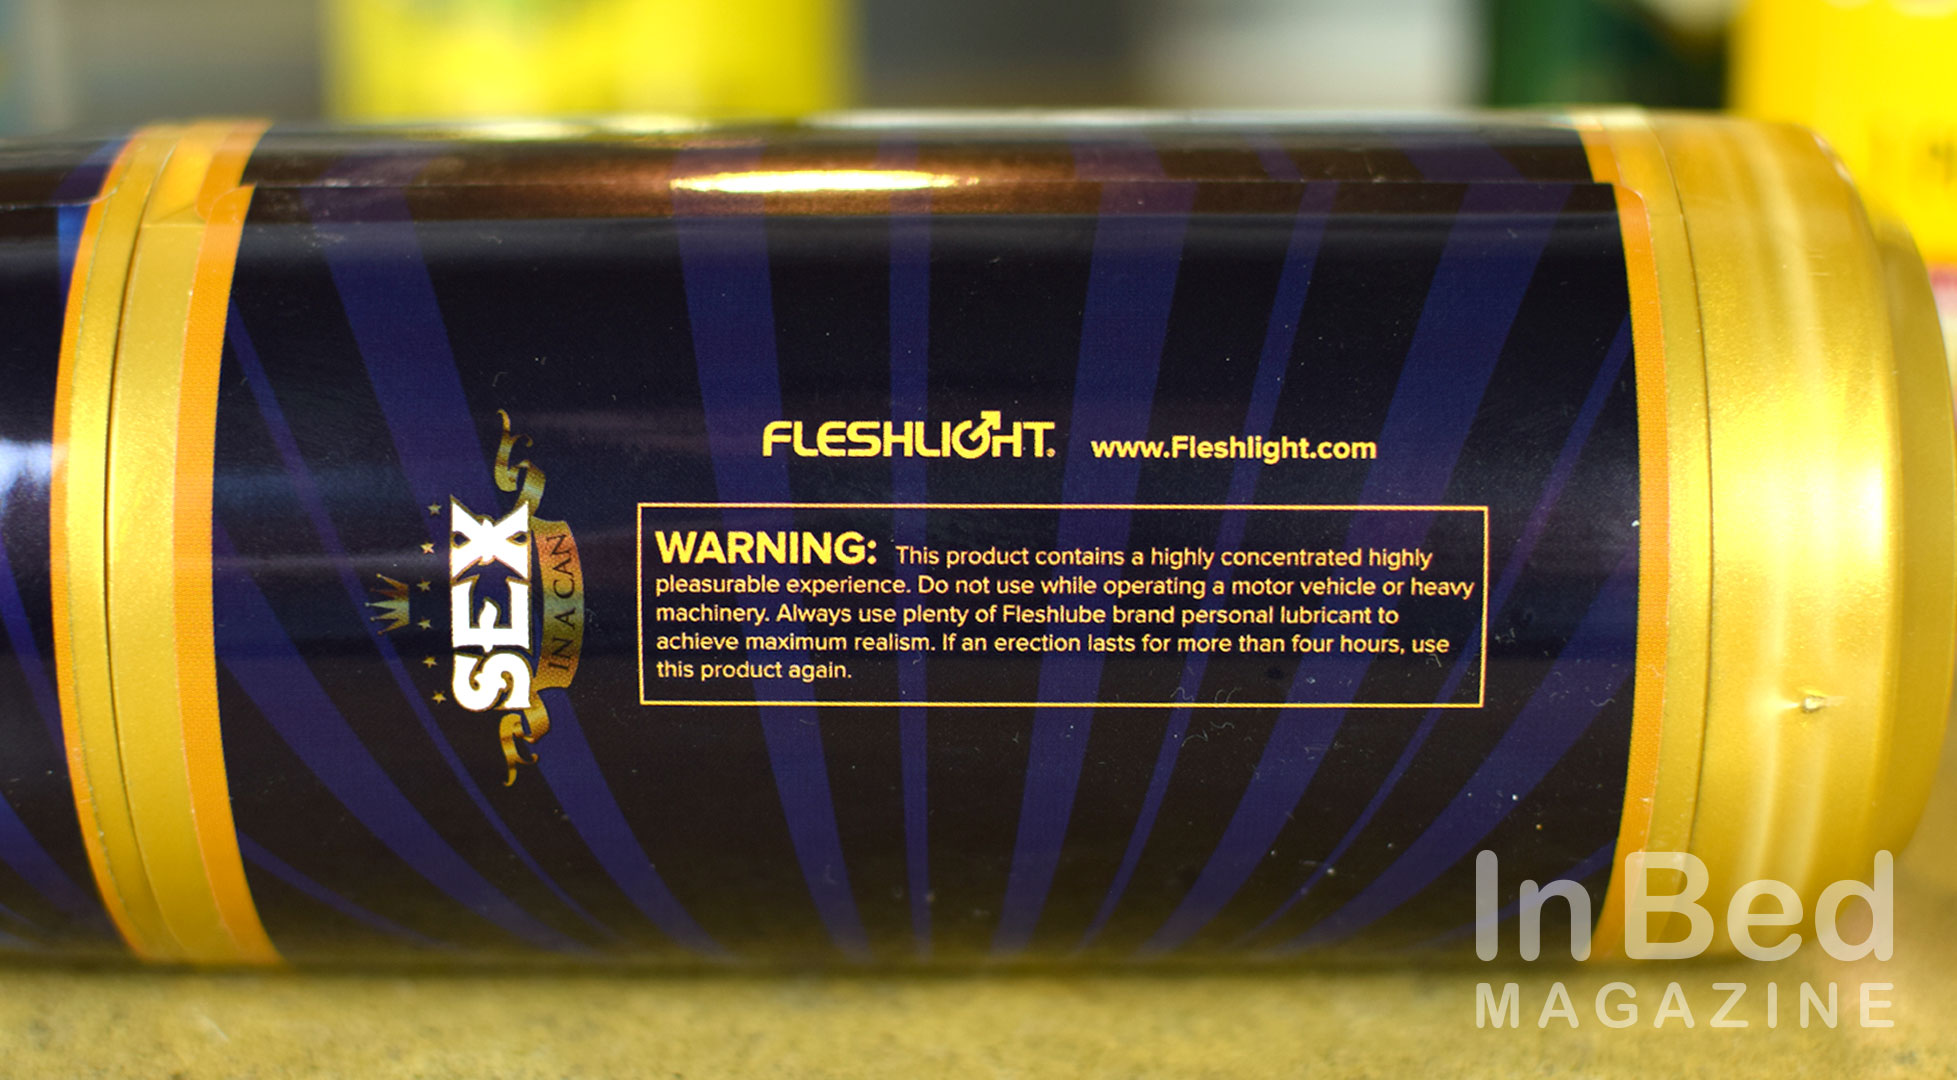 Fleshlight Lady Lager spoof of a beer label